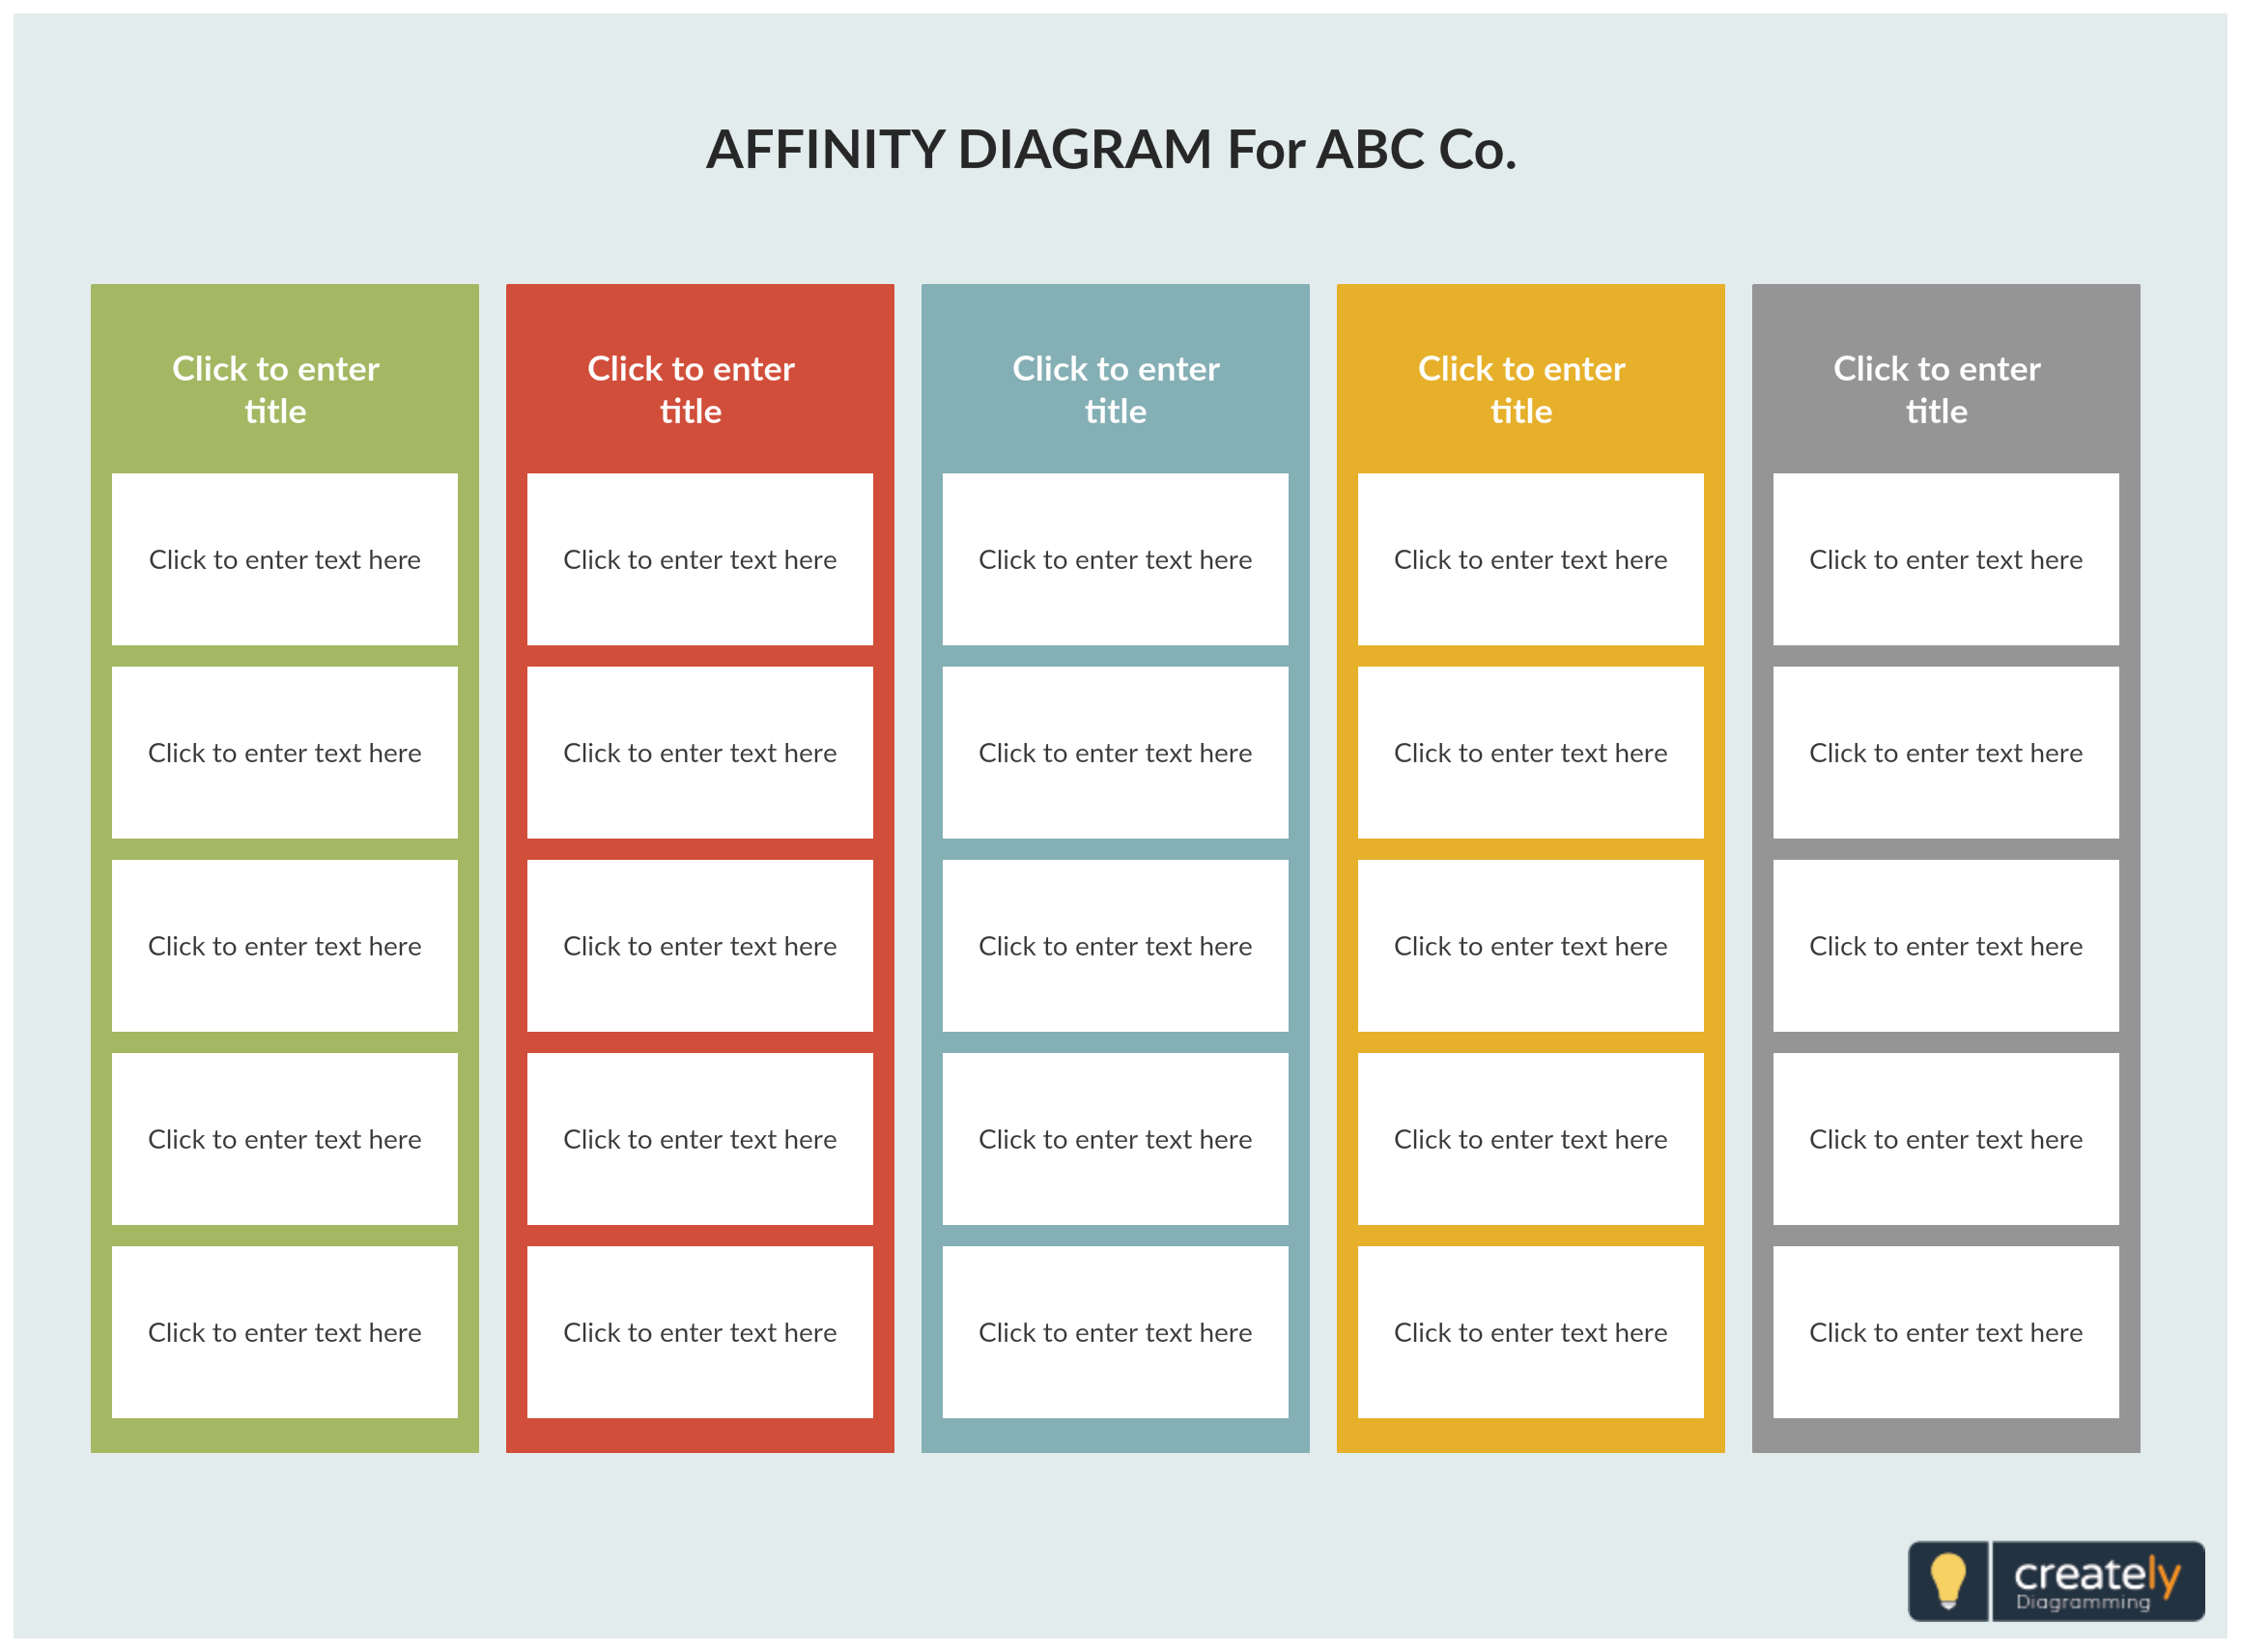 An Affinity Diagram Is A Brainstorming Technique Used To